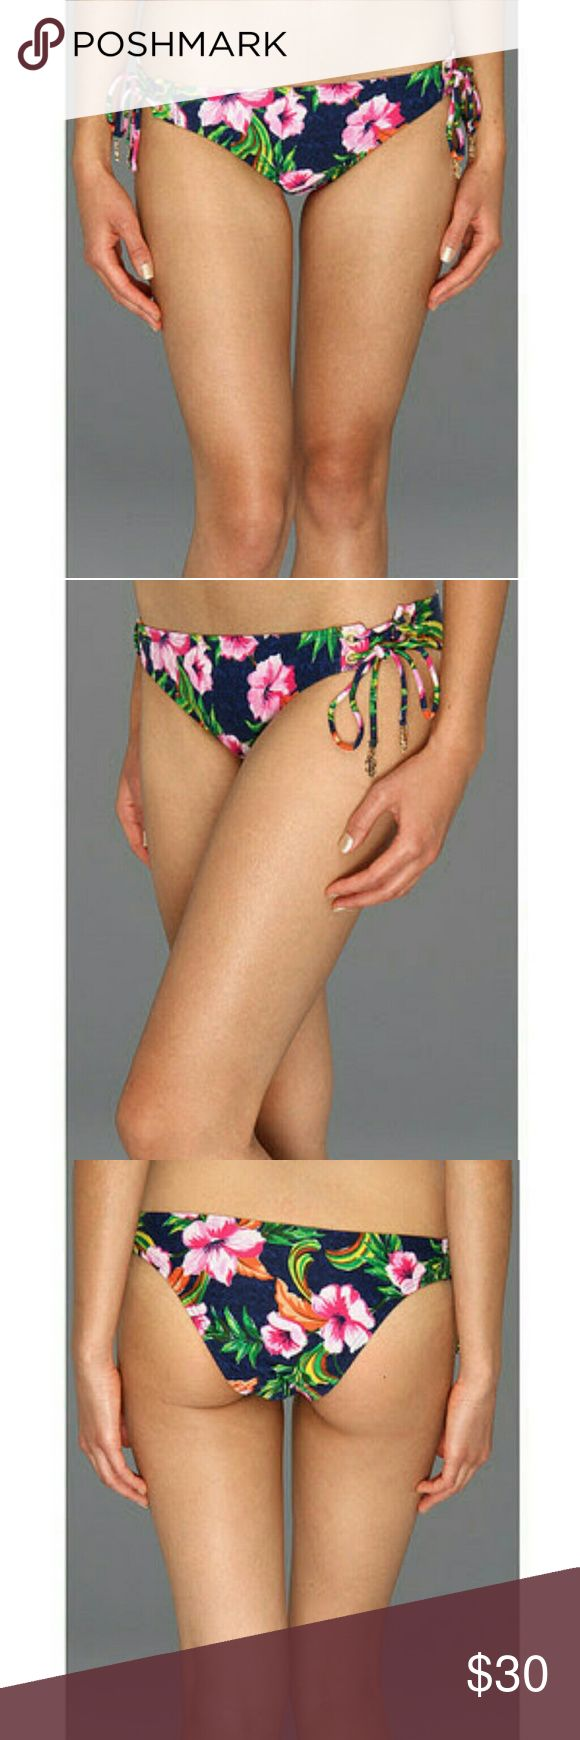 Juicy Couture Lace Up Flirt Bottoms Large/XL Swimsuit Separates Bottom Only Whether you're at faraway beaches or a backyard pool party, these sultry Juicy Couture bottoms are sure to be a crowd pleaser. Allover exotic floral print/ low rise with a cheeky coverage/ lace up ties at hips flaunt metallic hardware / lined/ 85% Meryl nylon 15% spandex/ Lining: 76% Polyester 24% spandex/ hand wash cold / Style #Y37084 Juicy Couture Swim Bikinis